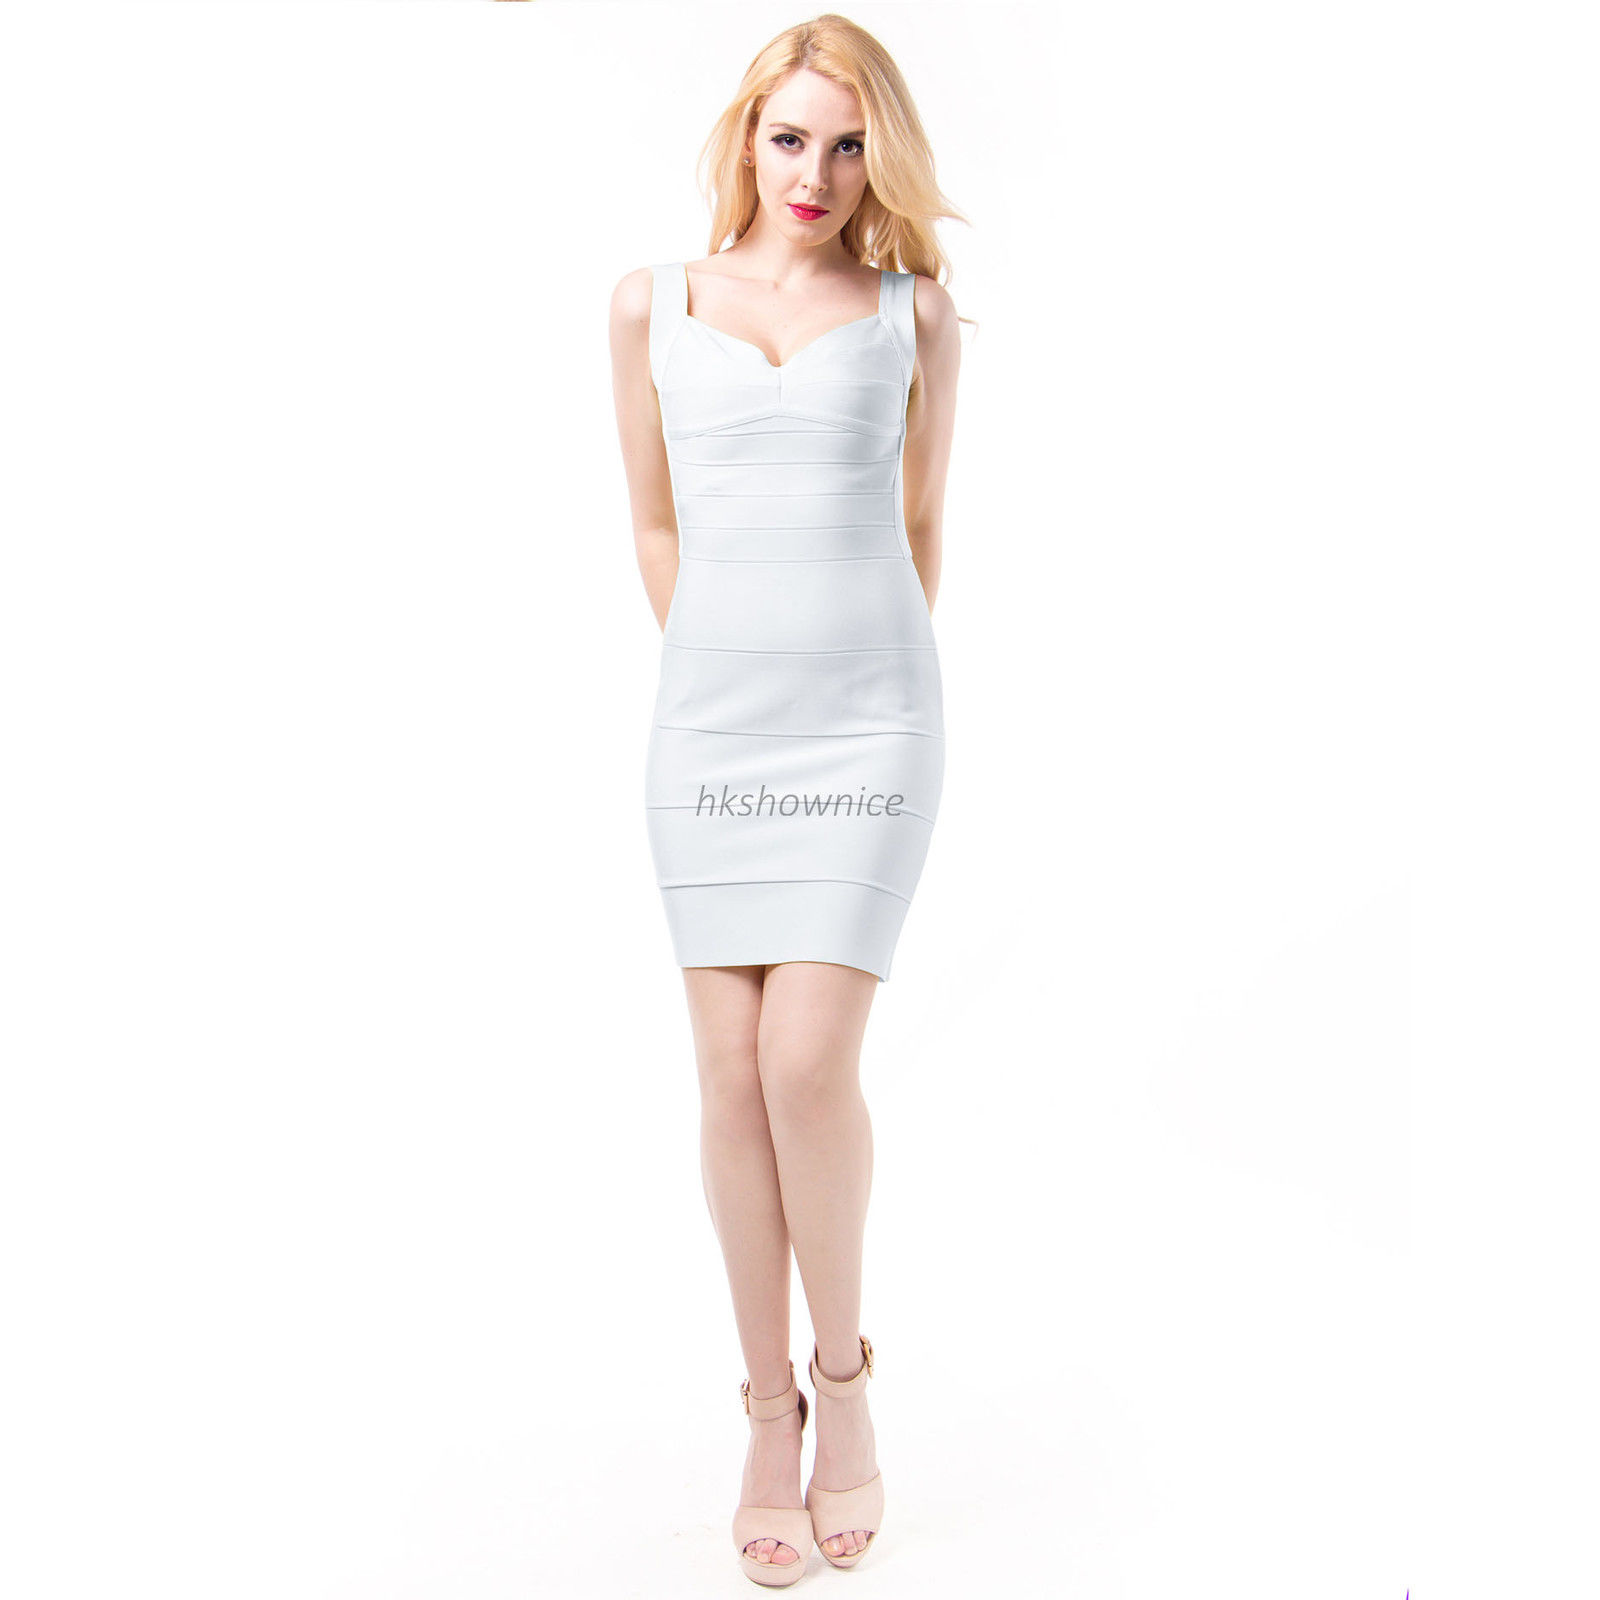 NEW-Arrival-White-Backless-Bandage-bodycon-dress-Womens-Party ...